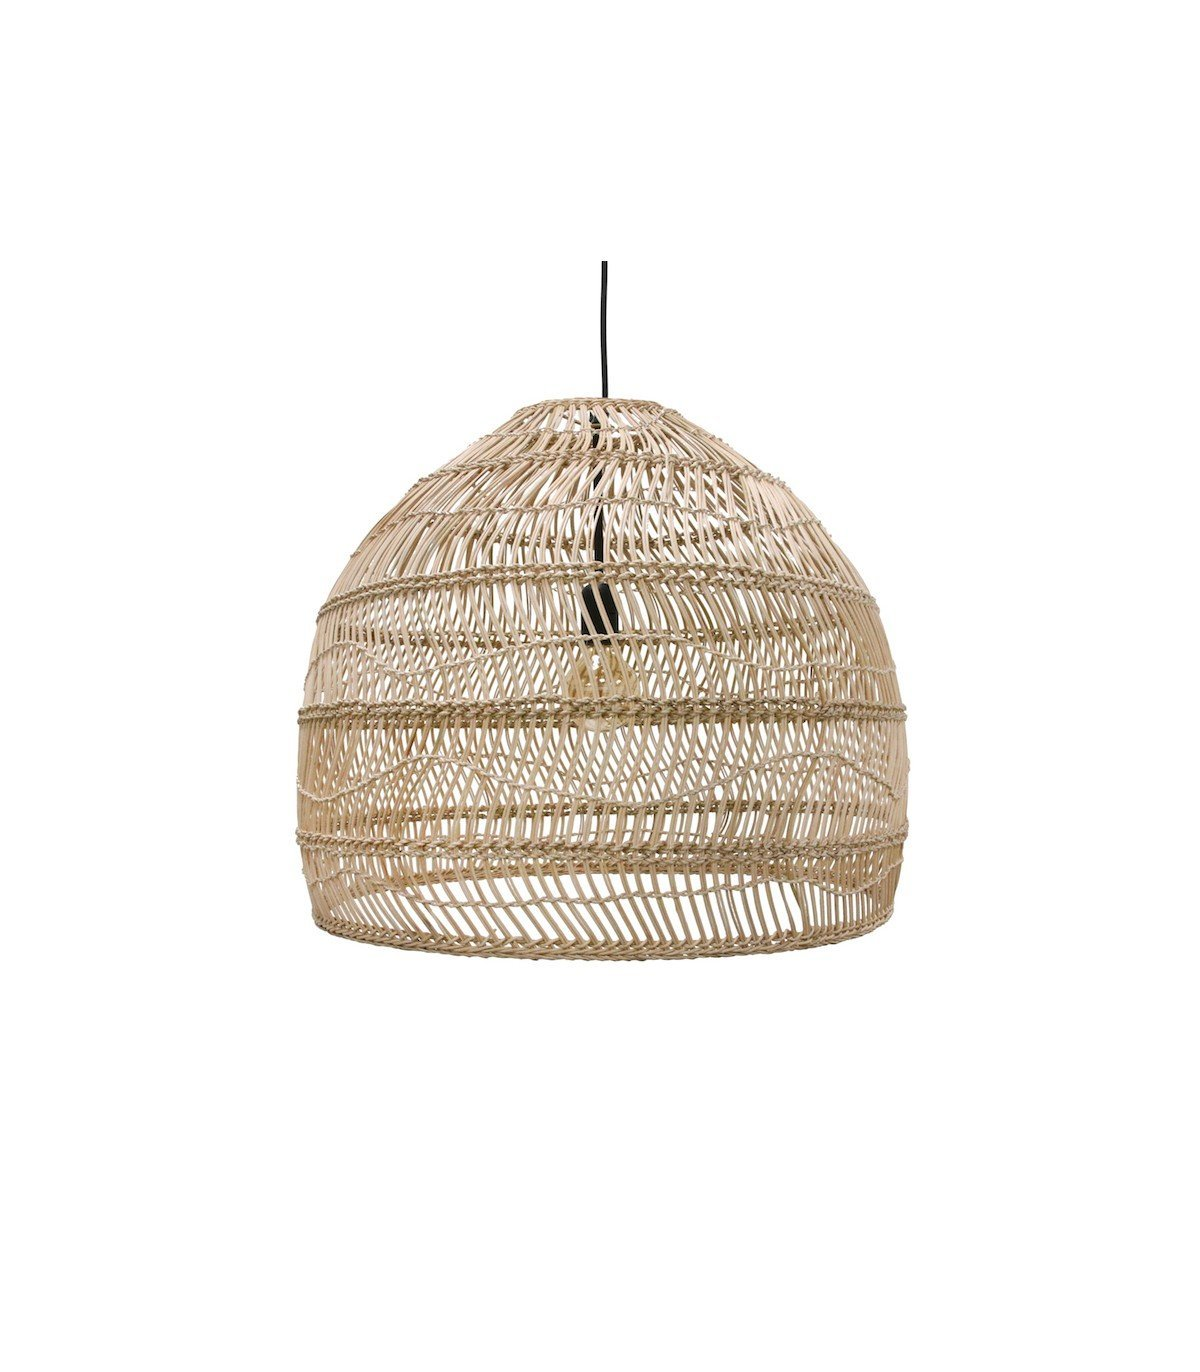 Suspension osier l hk living for Suspension osier design